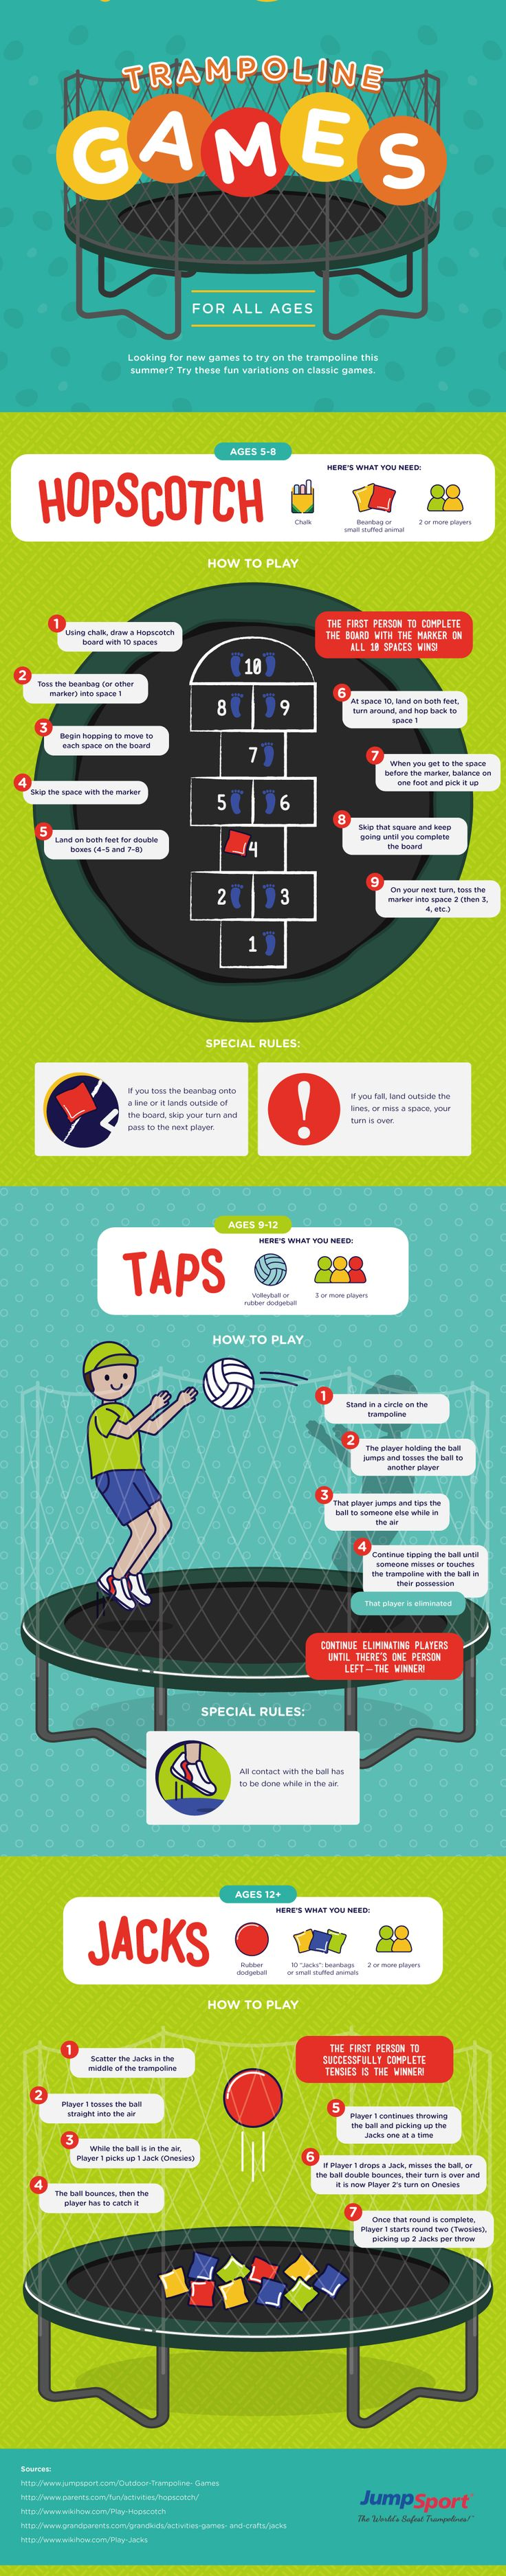 Fun Trampoline Games for the Summer